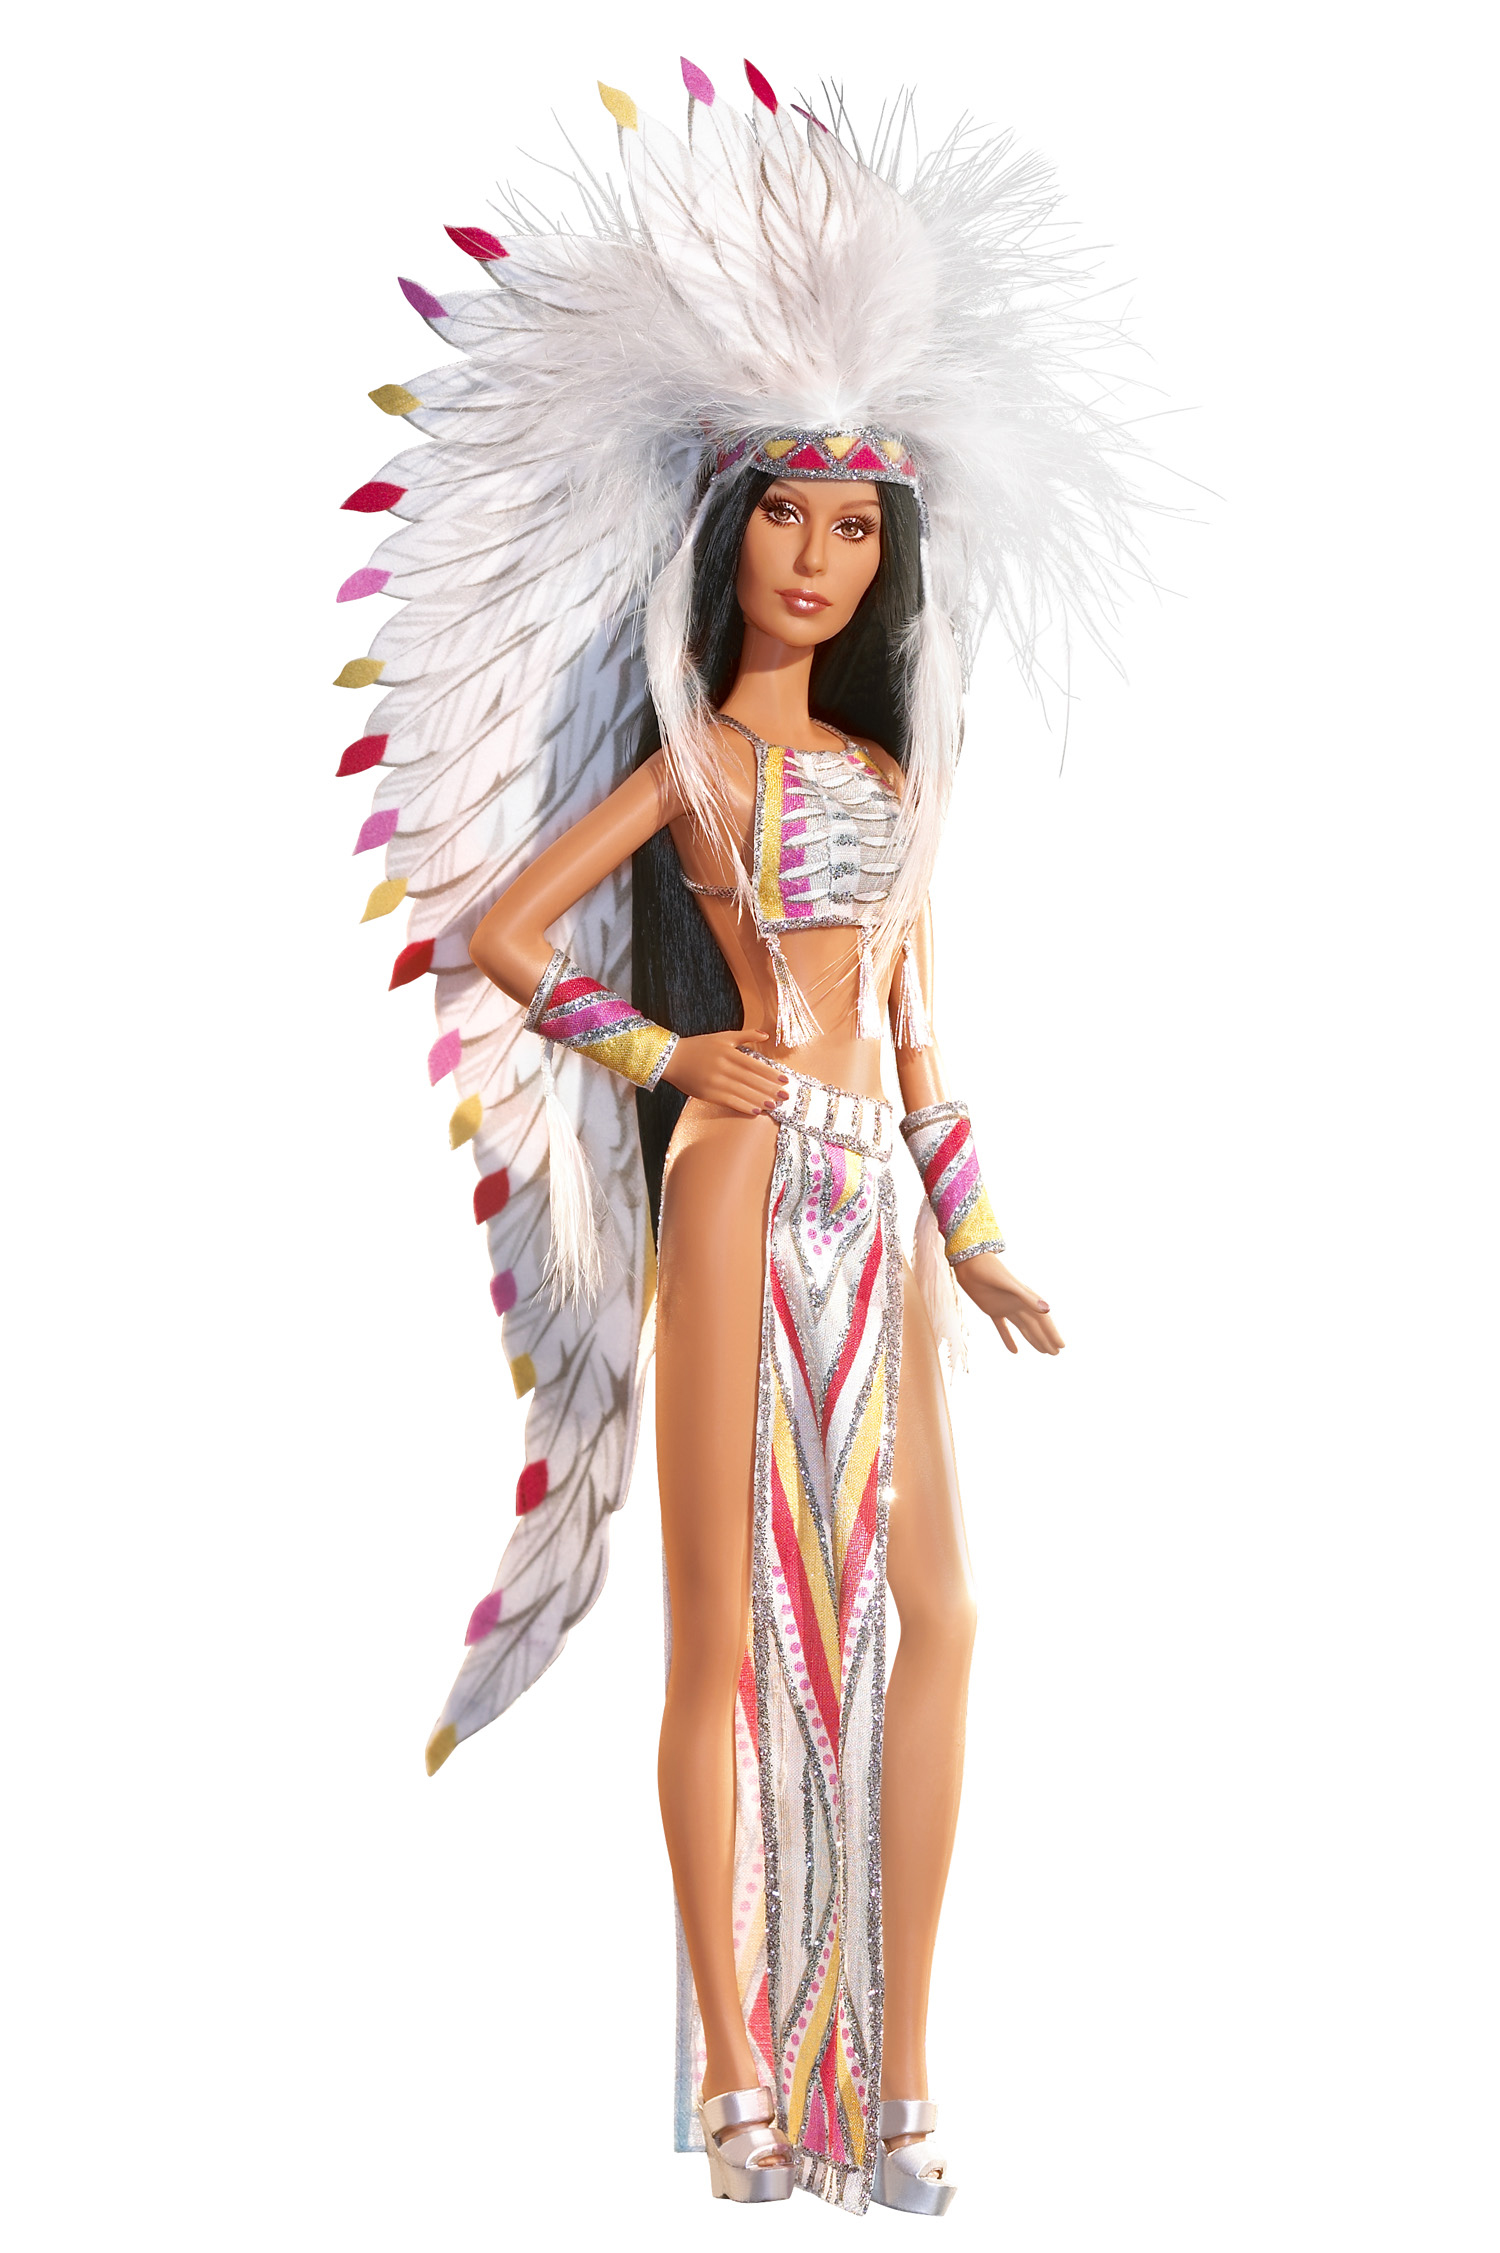 The 70's Cher Barbie, released in 2007.